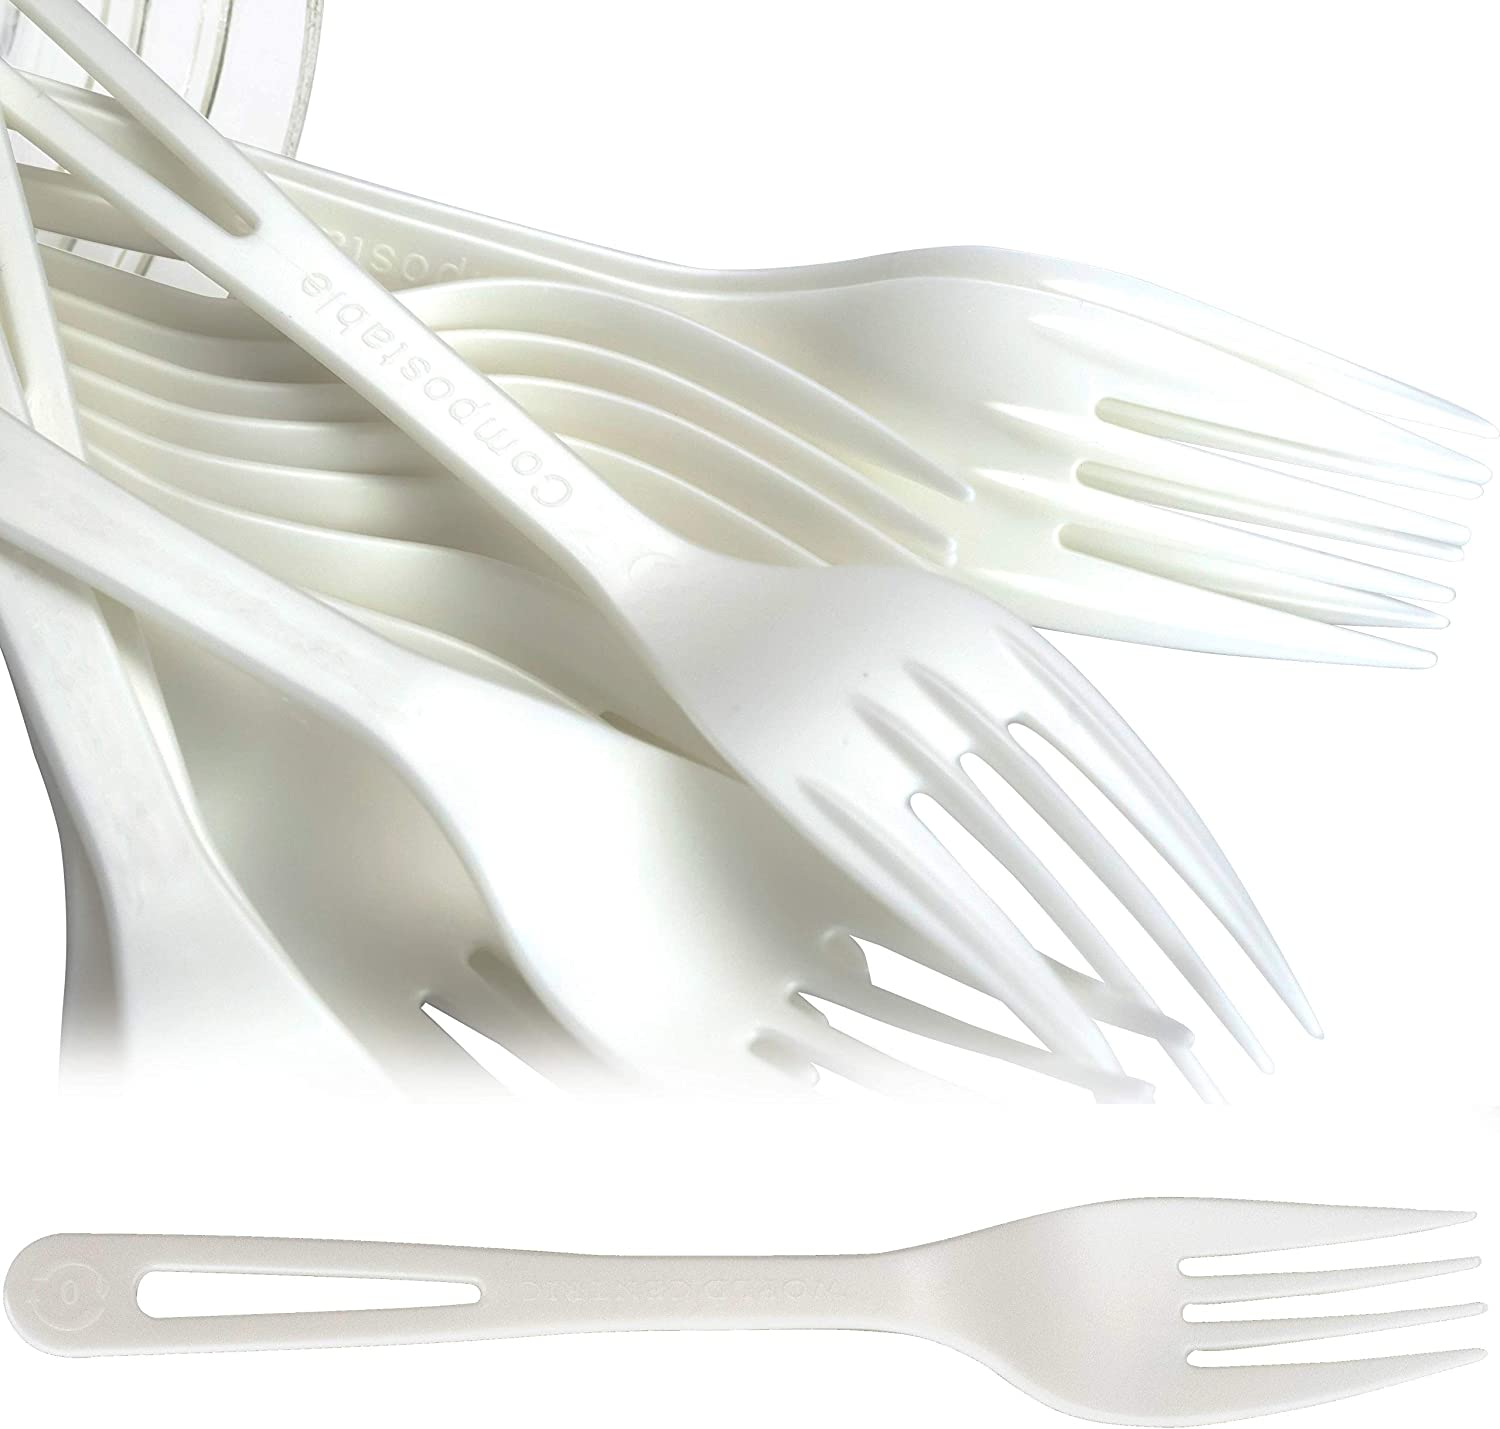 Biodegradable Forks Made From Popular standard Non-GMO Plastic Lowest price challenge 50 Pac Plant-Based